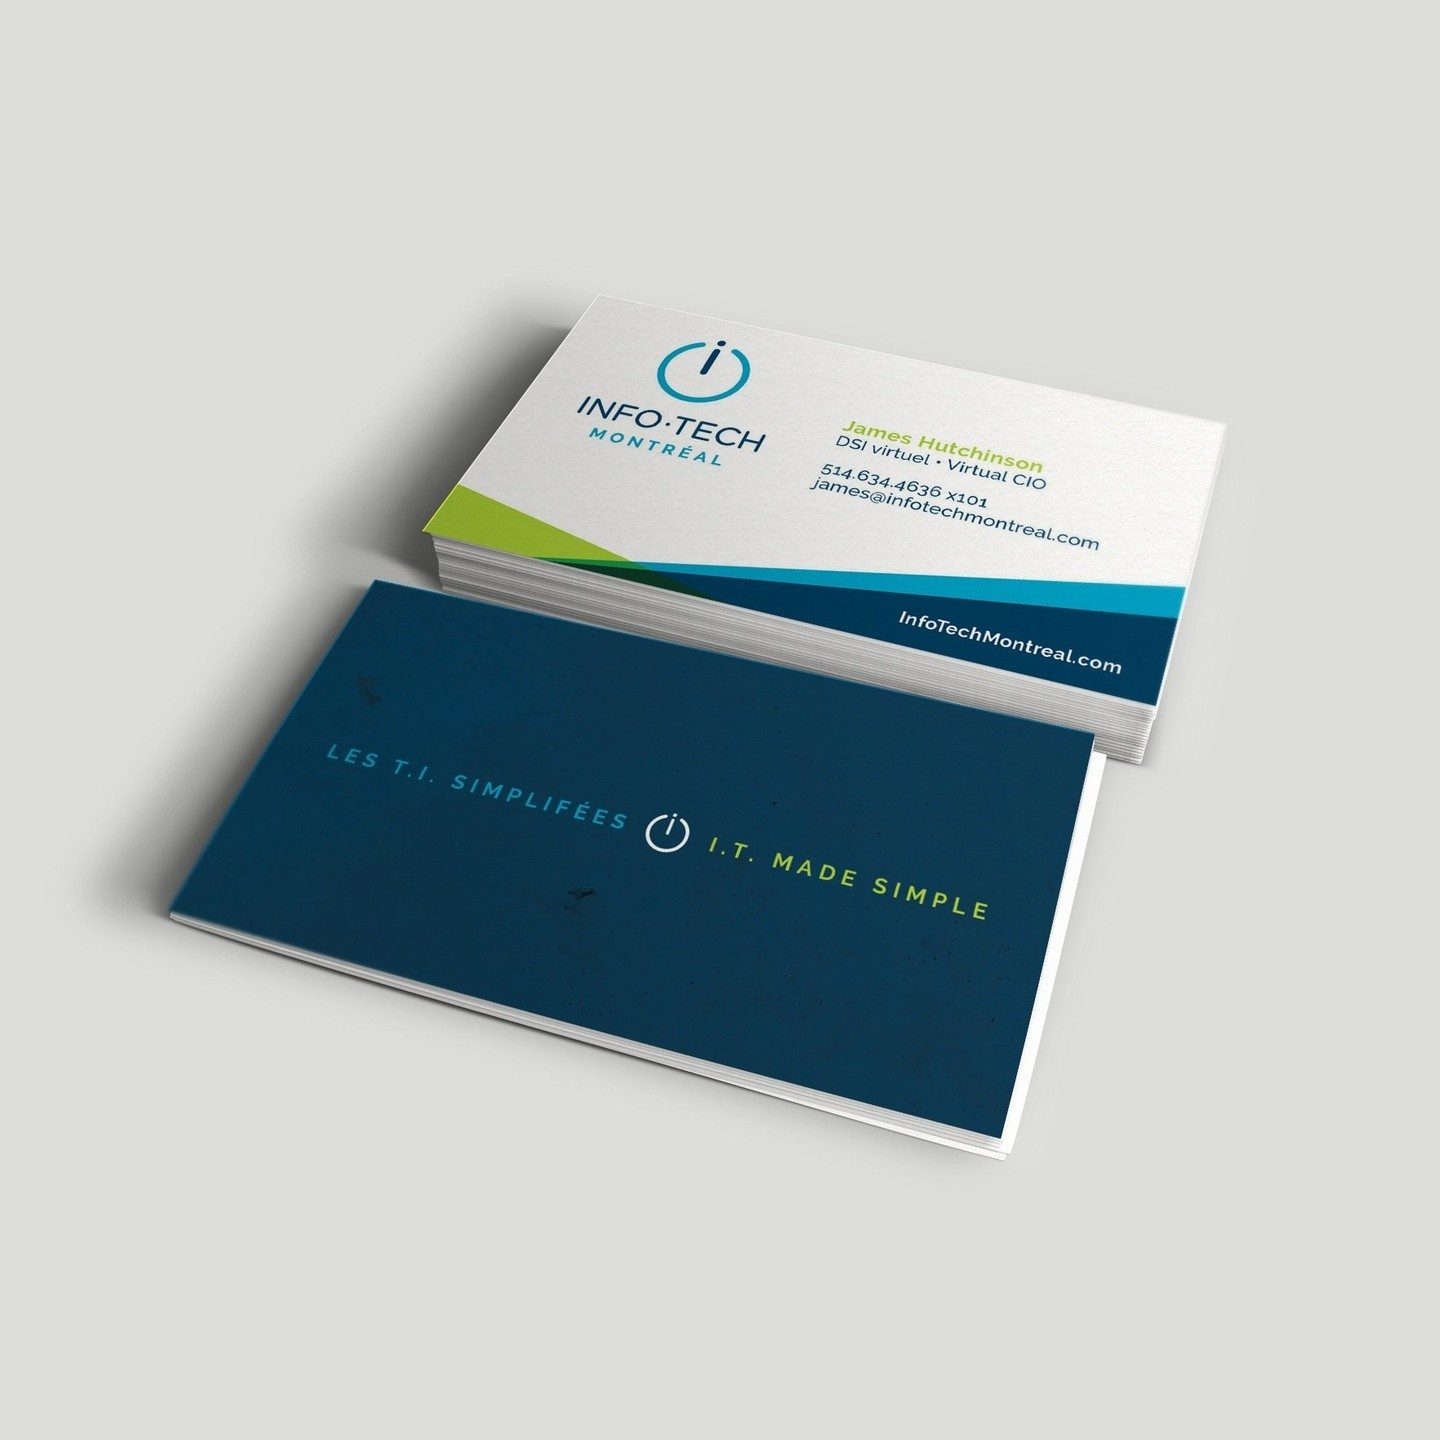 Website Design & Branding for Financial Services Advisor by High Frequency Brands